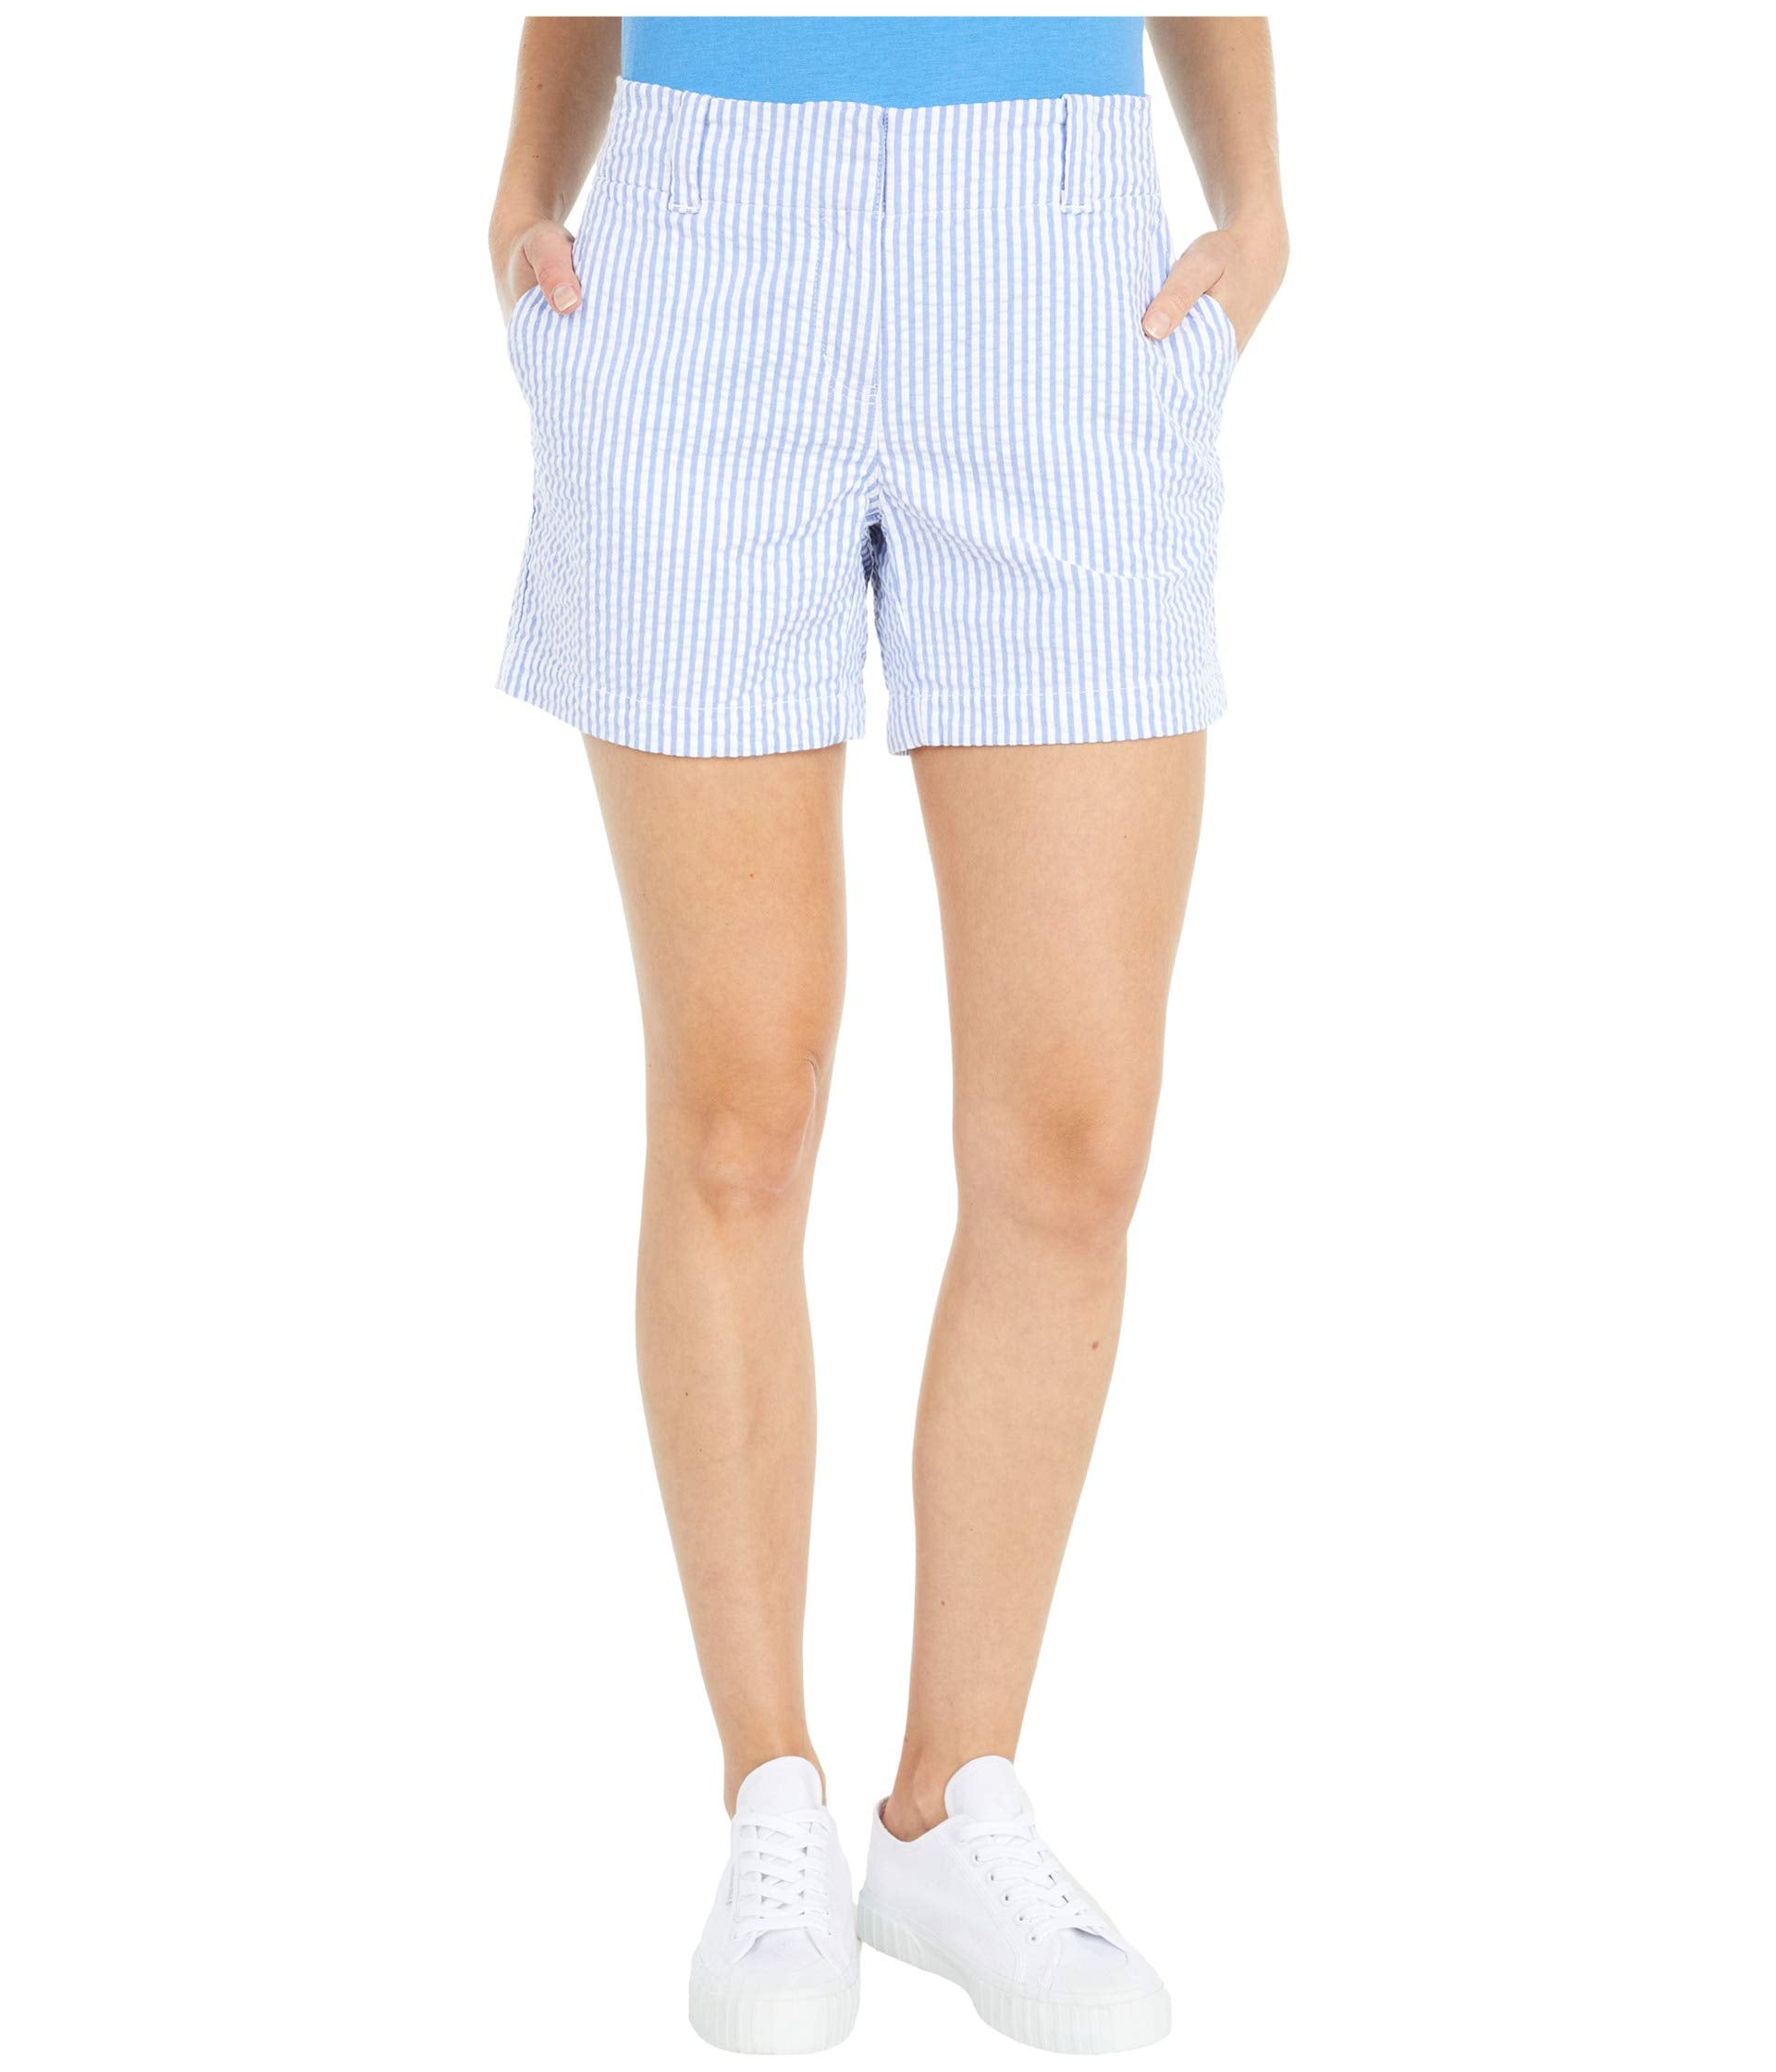 "Seersucker 5"" Everyday Shorts"